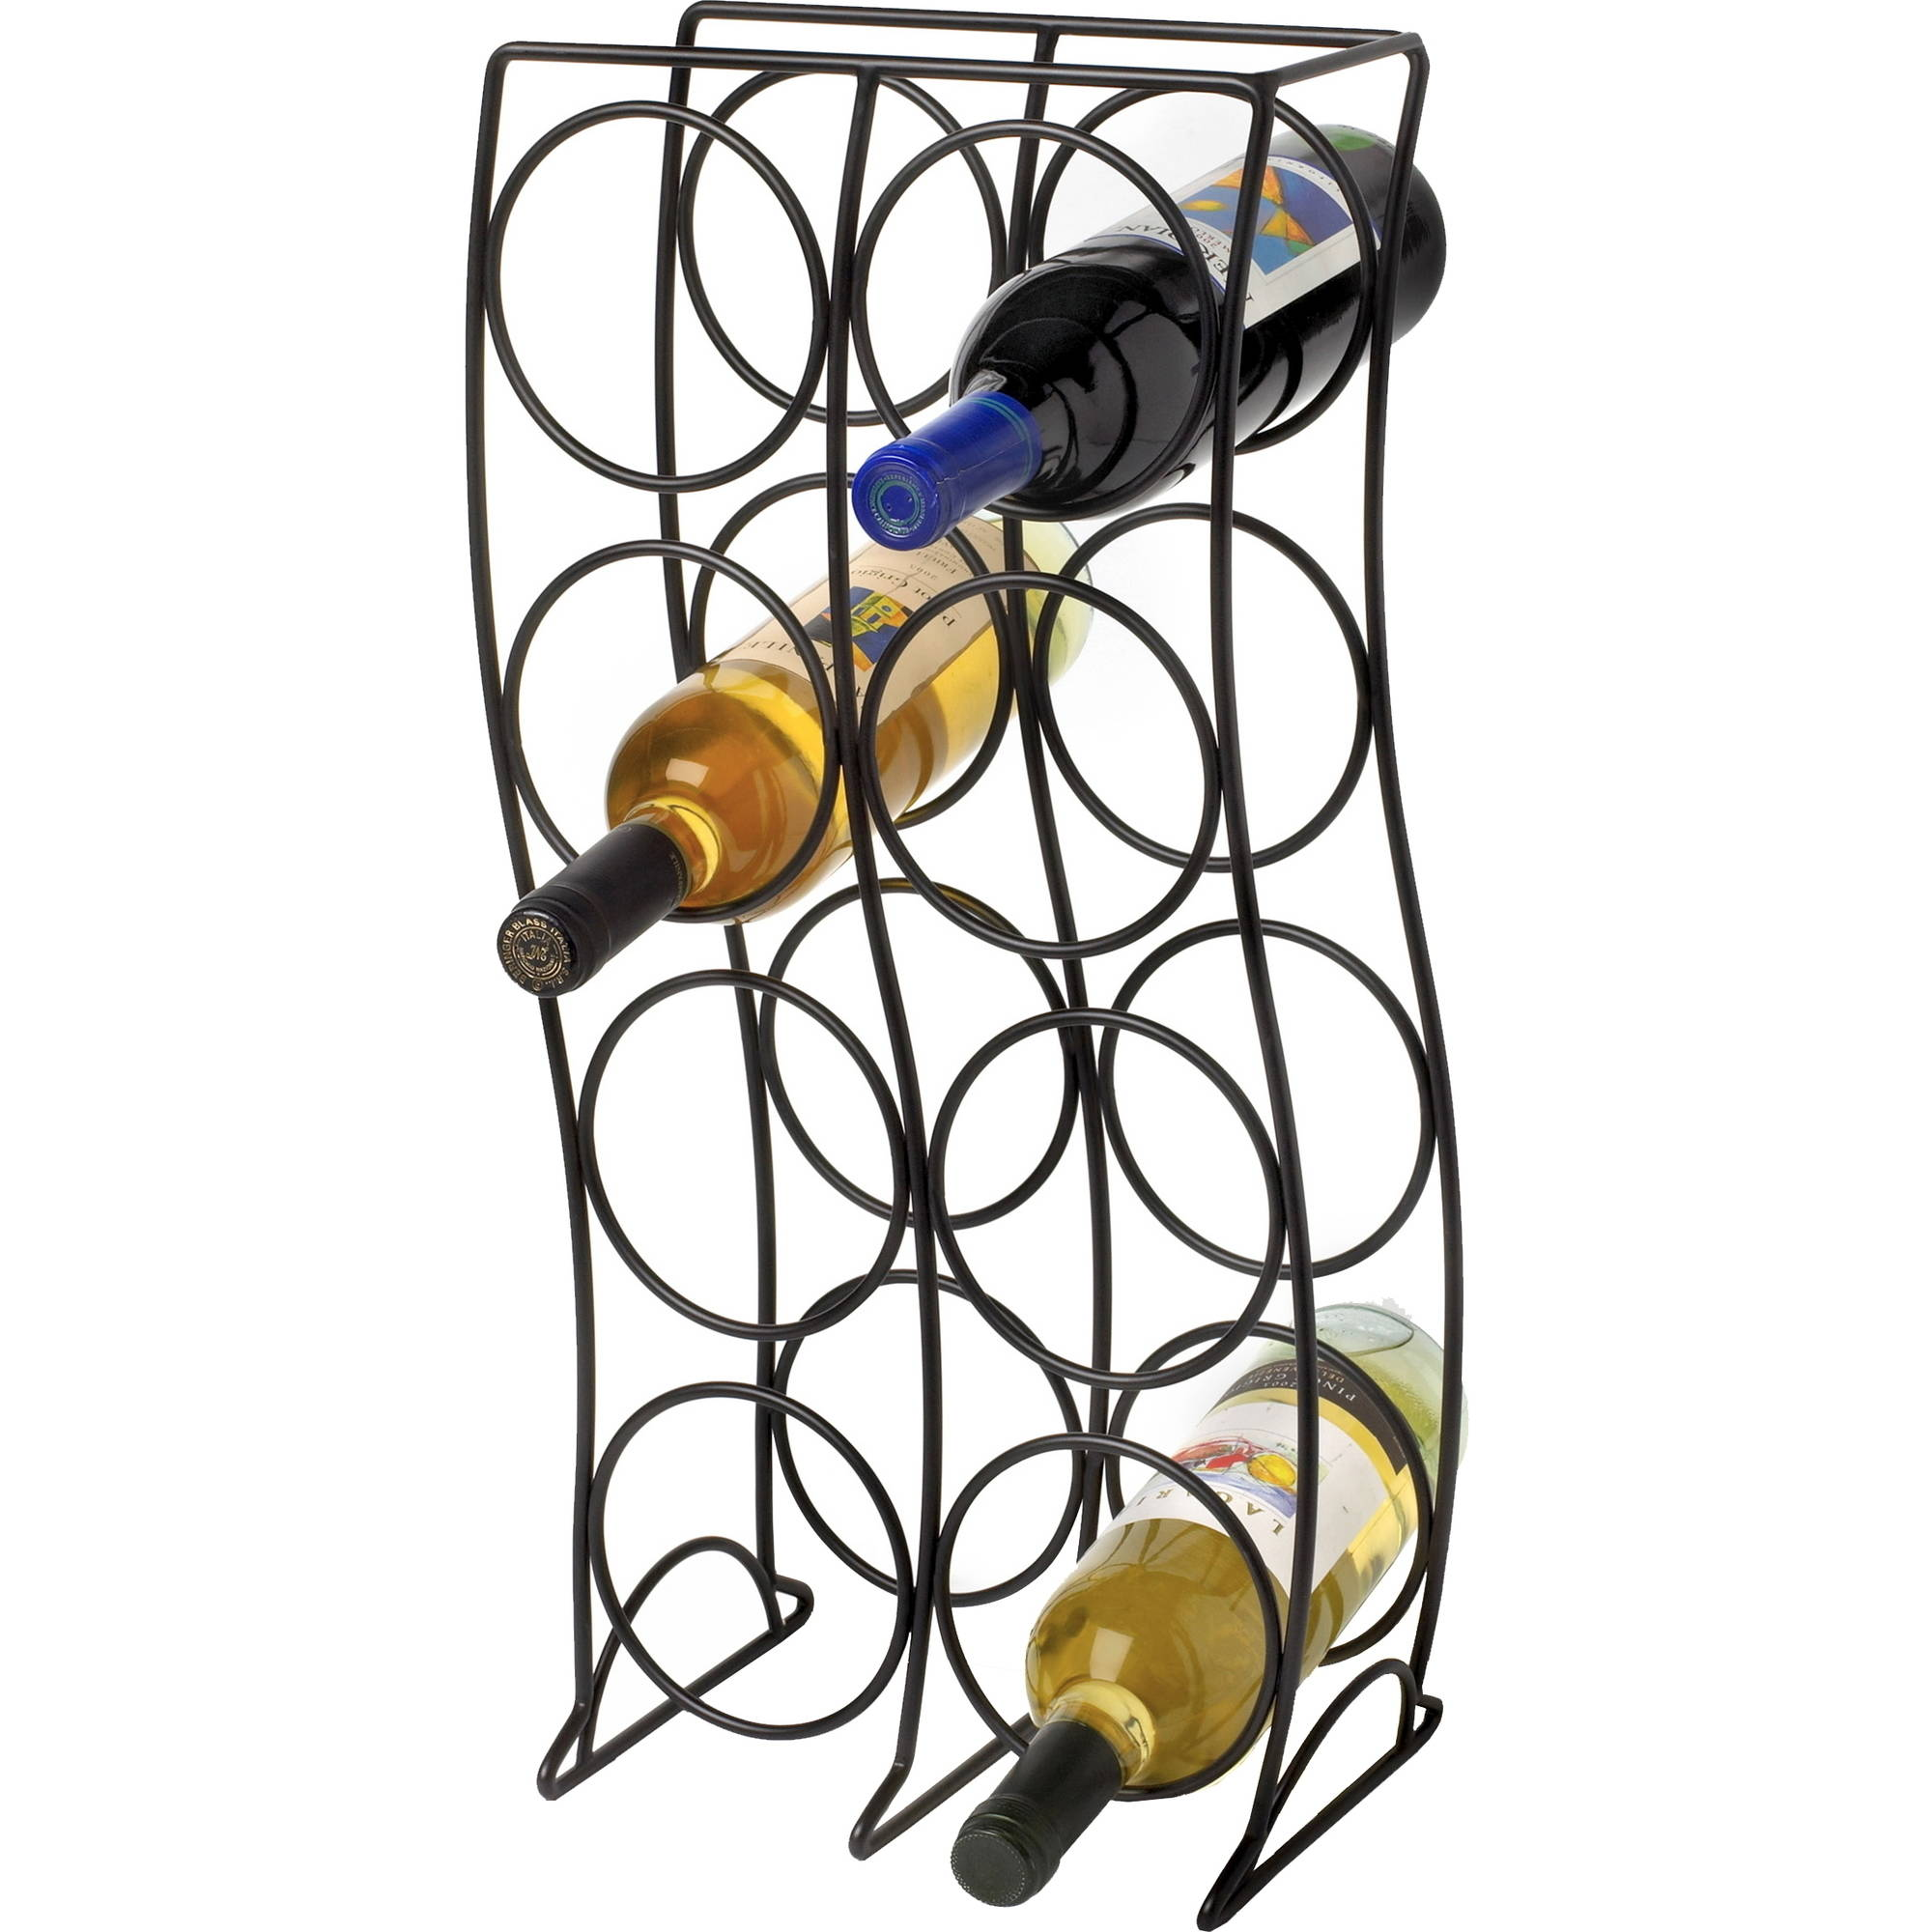 Curve 8Bottle Wine Rack Black by Spectrum Diversified Designs